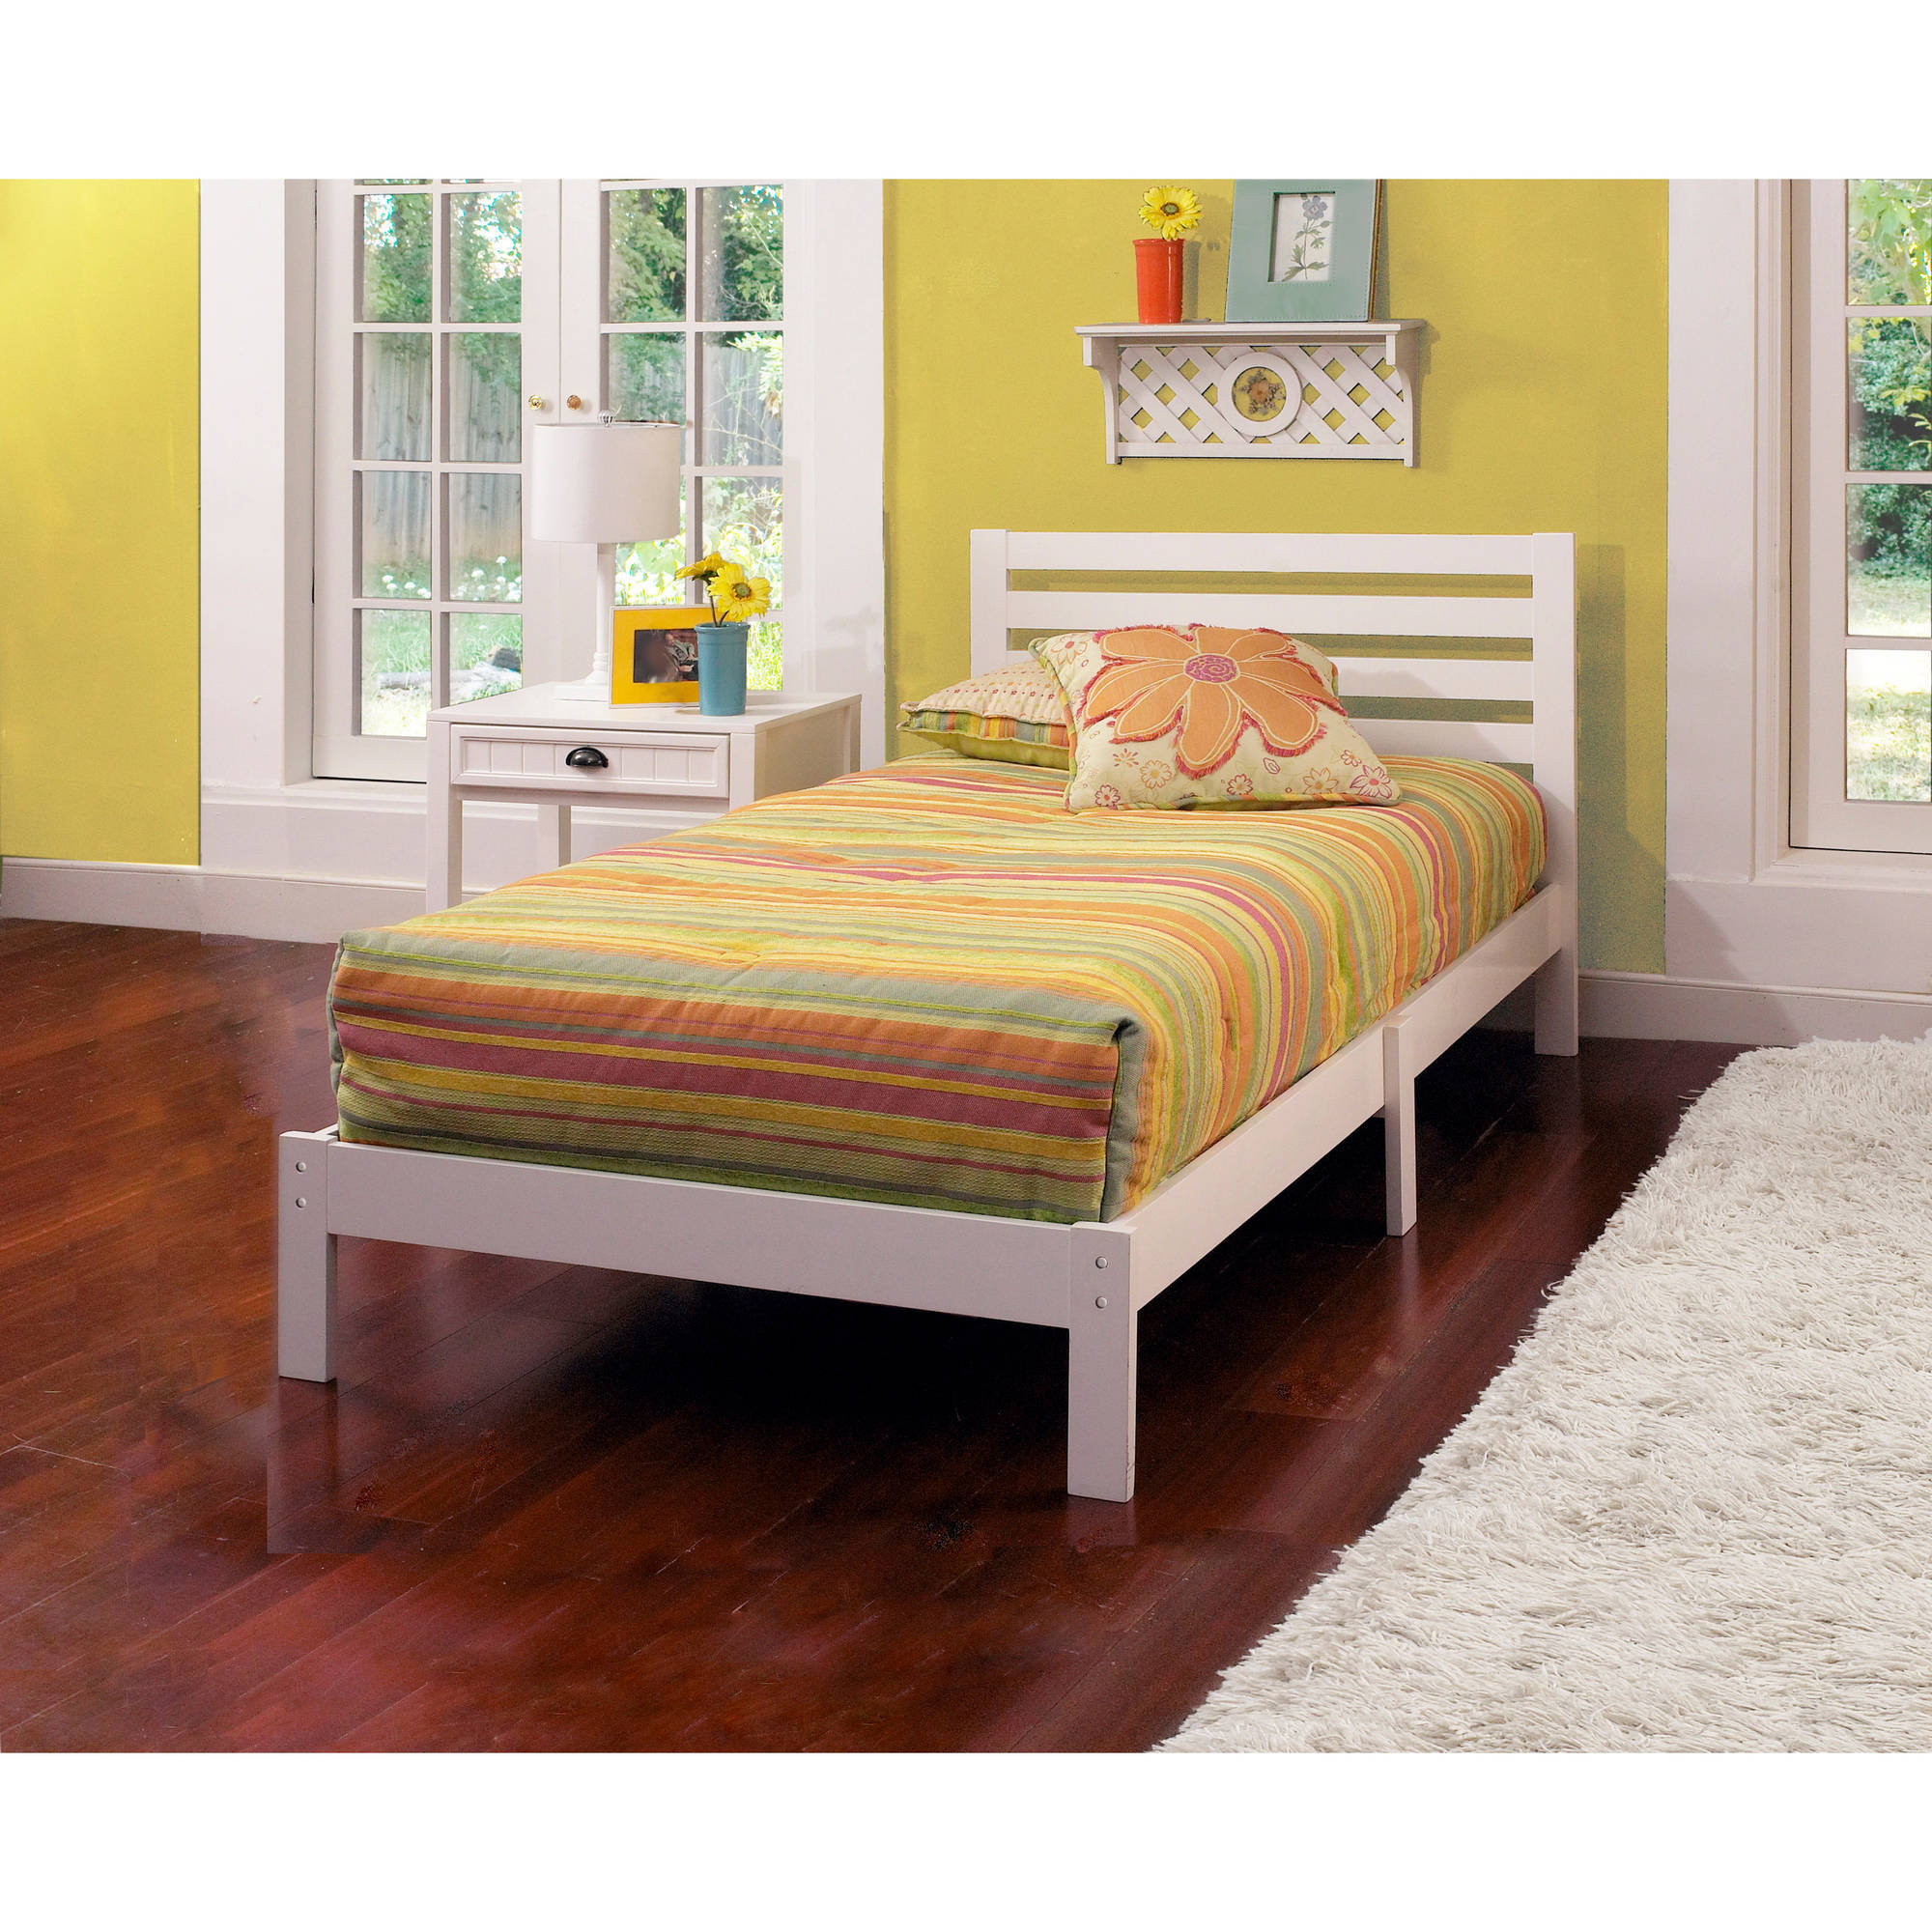 Aiden twin bed white